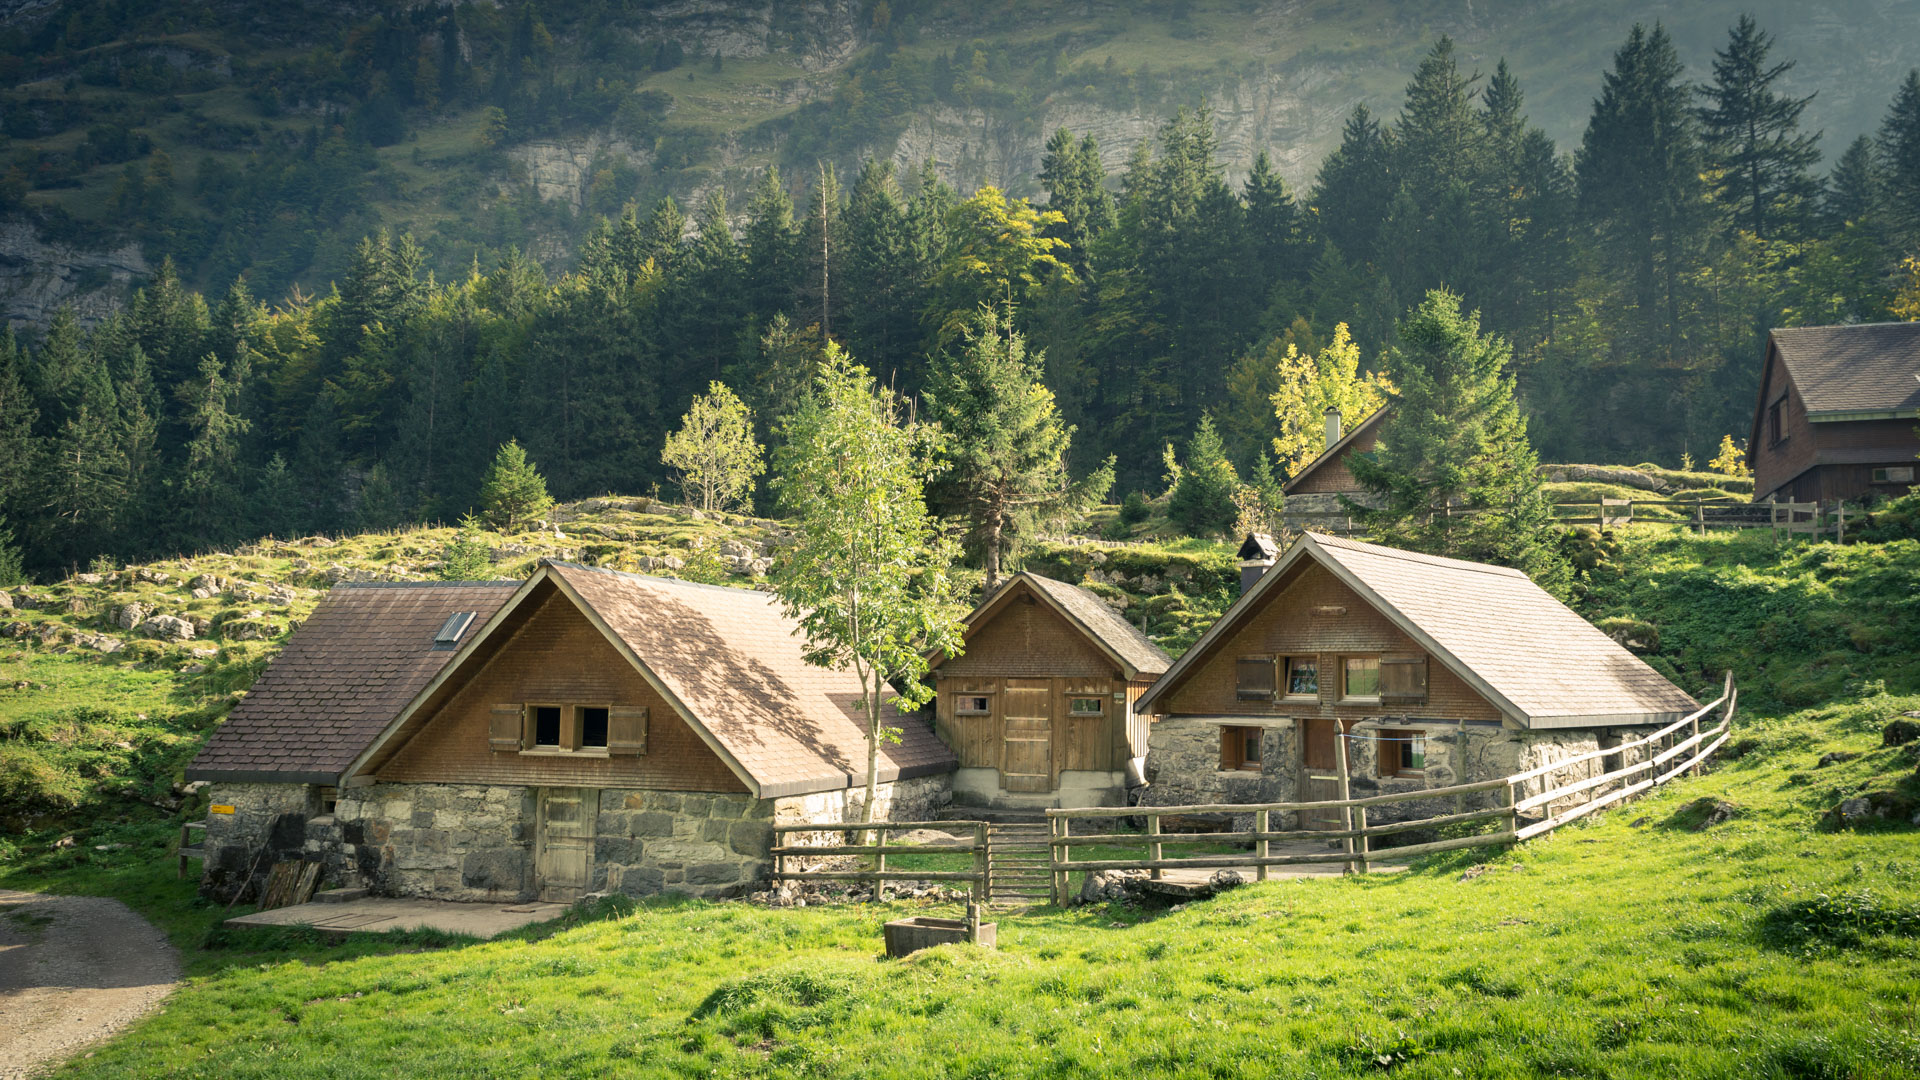 Appenzell (11 of 14)